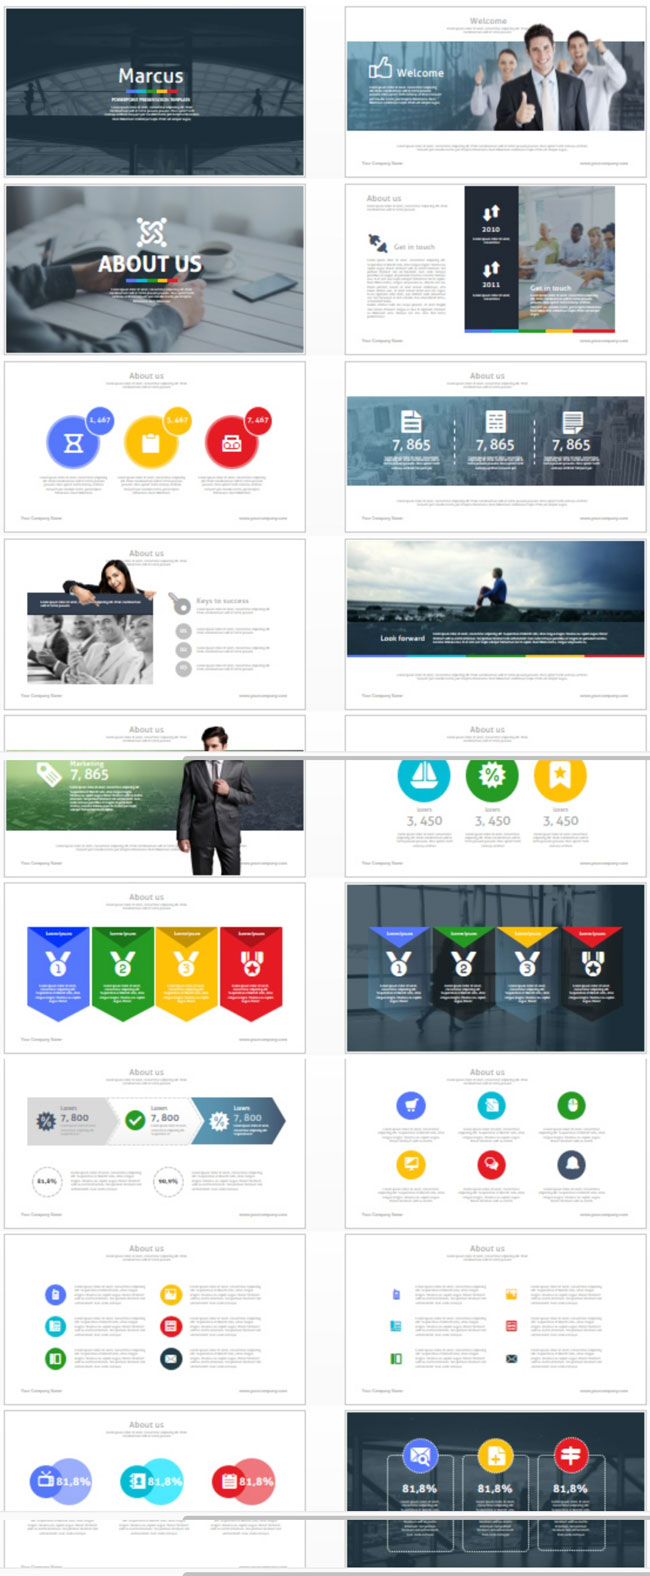 30+ Amazing Powerpoint Templates 2016 - DesignMaz